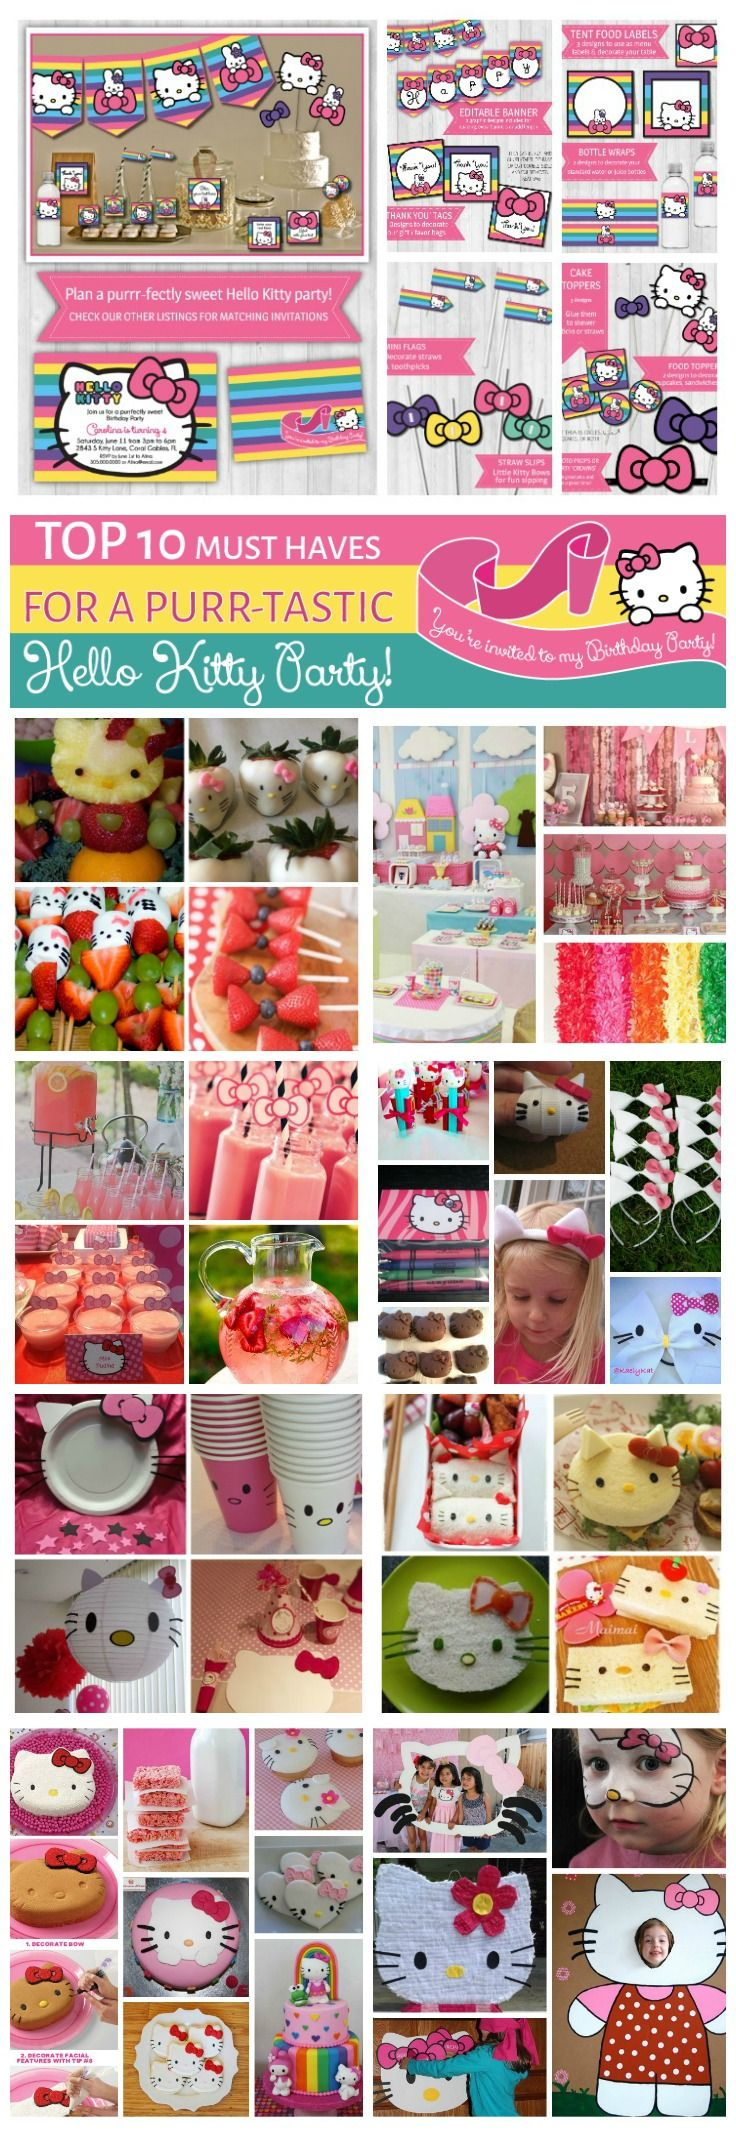 Hello Kitty Party Decor, Ideas, Food, DIY, Sweets, Invitations, Printables... Everything you need to throw a Purrrr-Tastic Hello Kitty Party!